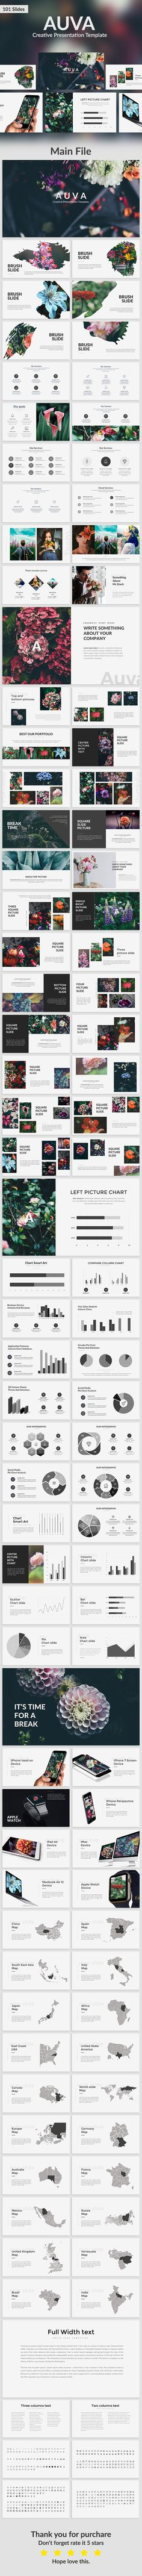 Auva - Creative Google Slide Template - #Google #Slides Presentation #Templates Download here: https://graphicriver.net/item/auva-creative-google-slide-template/19432303?ref=alena994